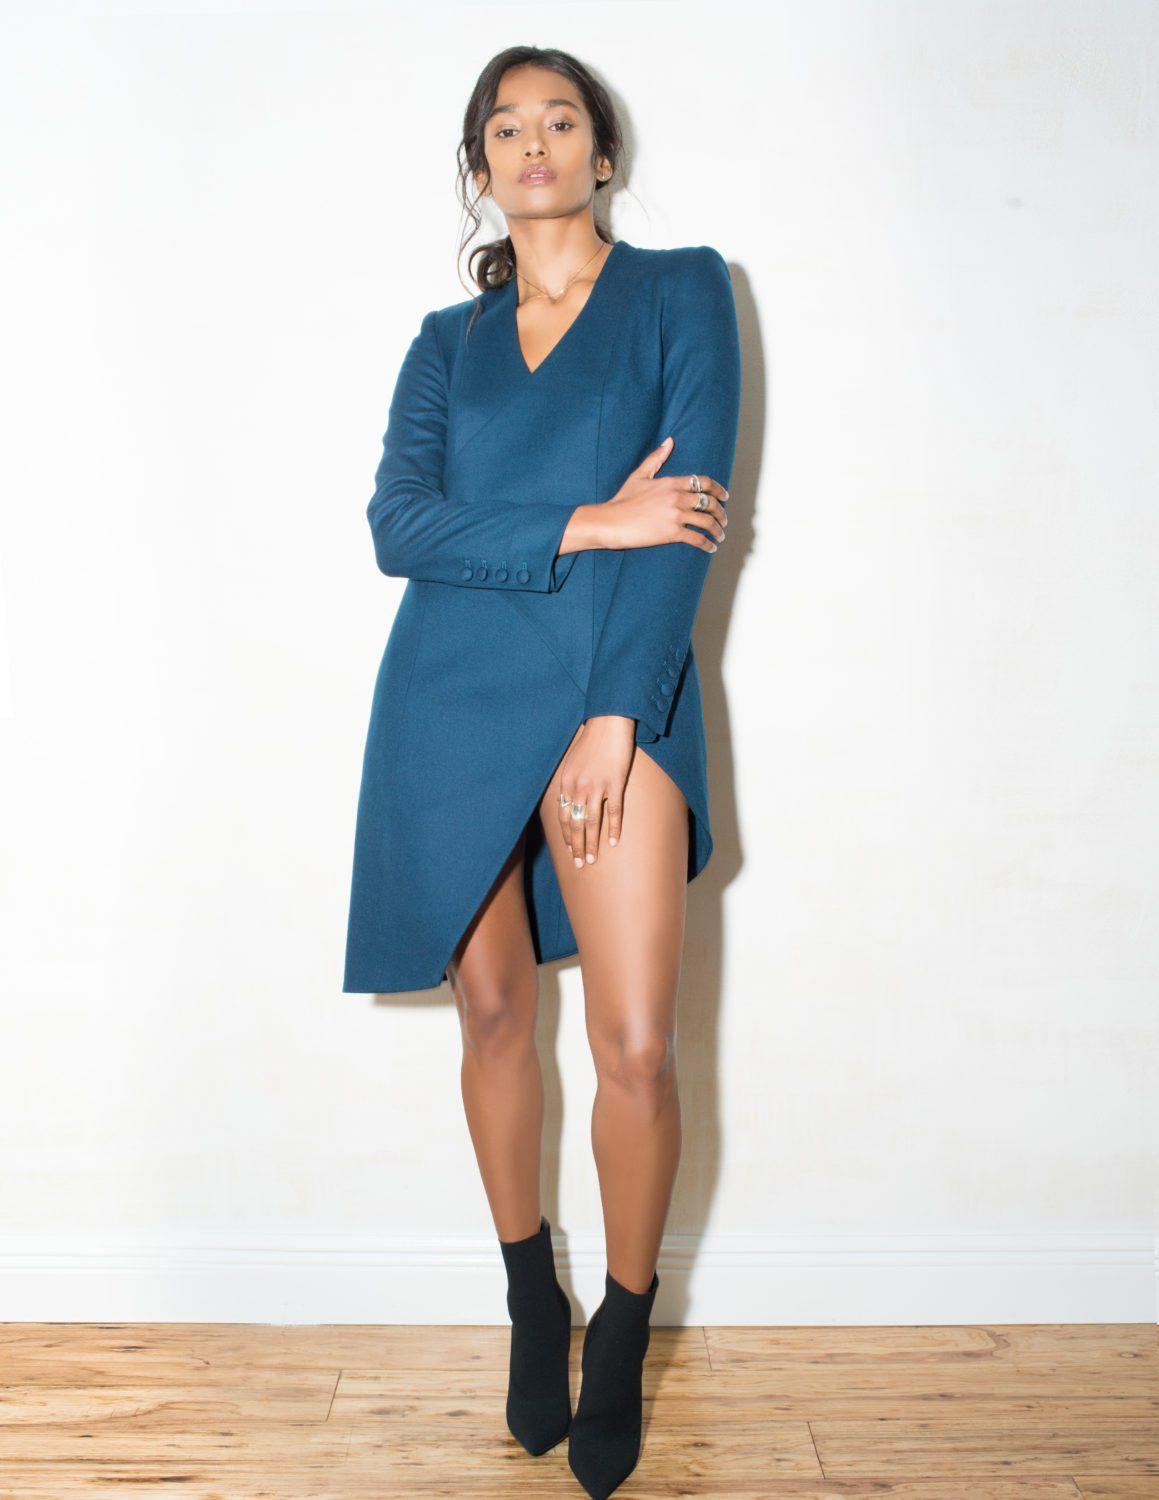 Studio Lookbook MuzziNYC look book teal jacket international model Nidhi